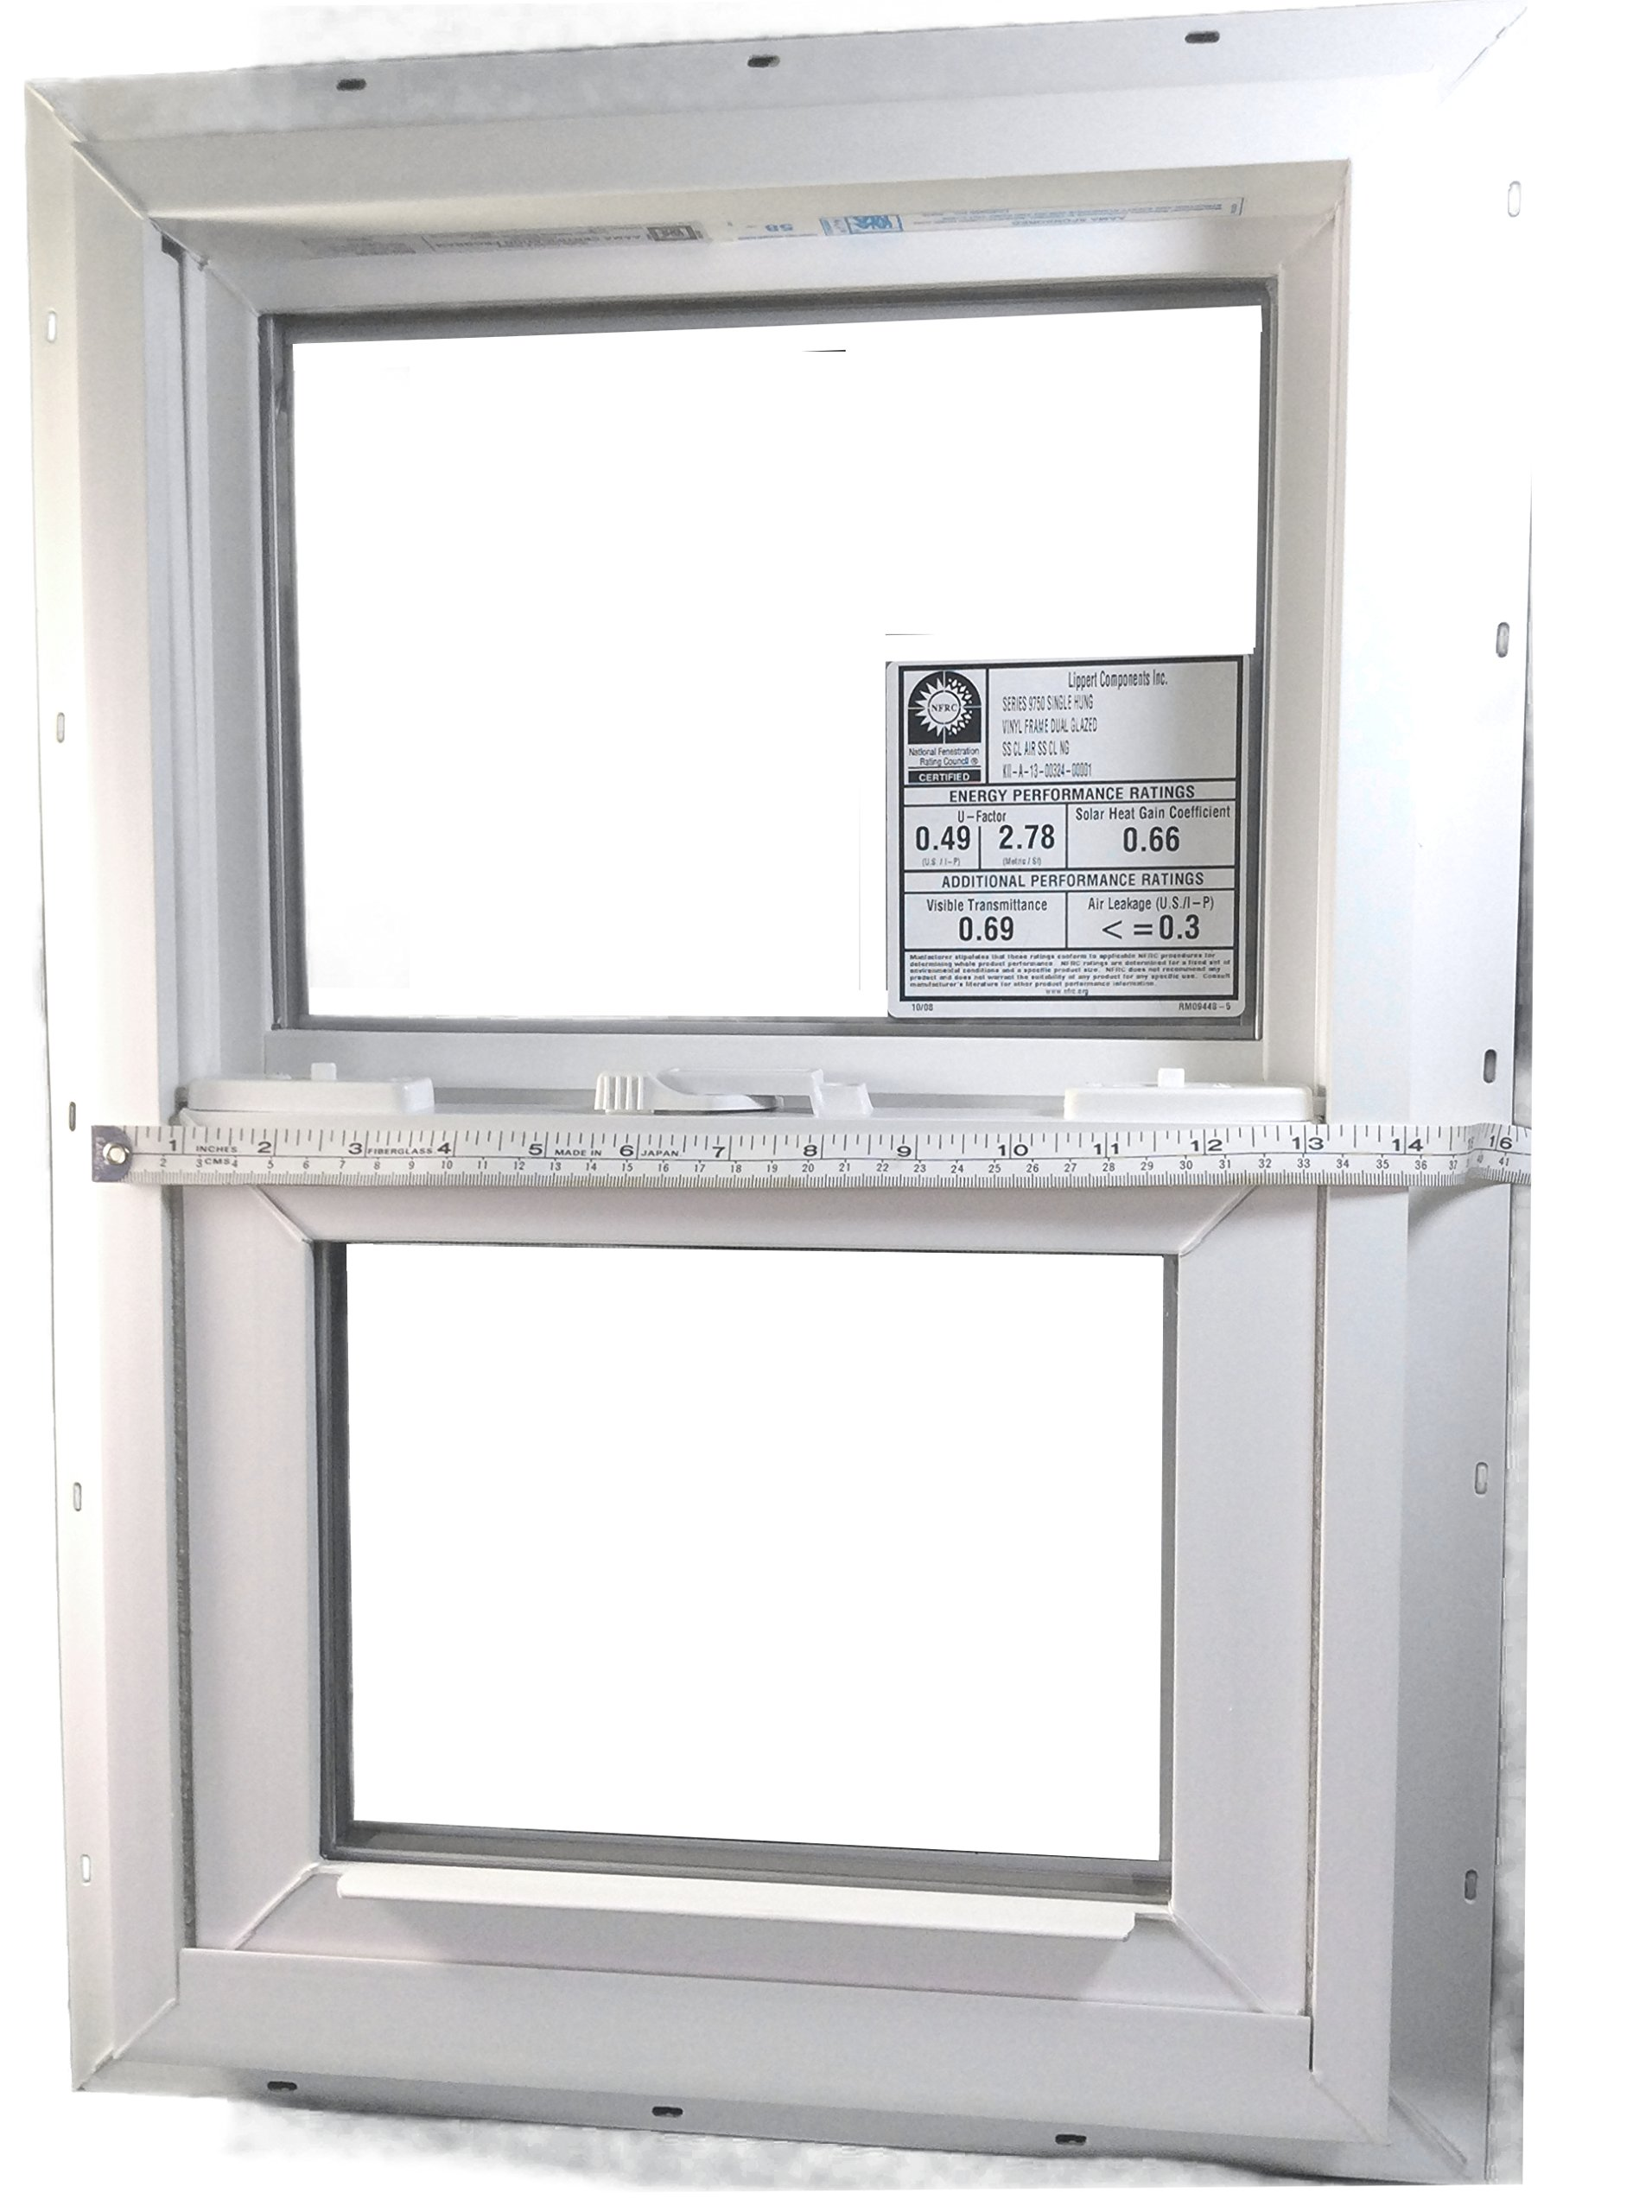 Mobile Home Window 14X21 Insulated Vinyl Thermopane Lower Tilt Sash Screen Included by Kinro